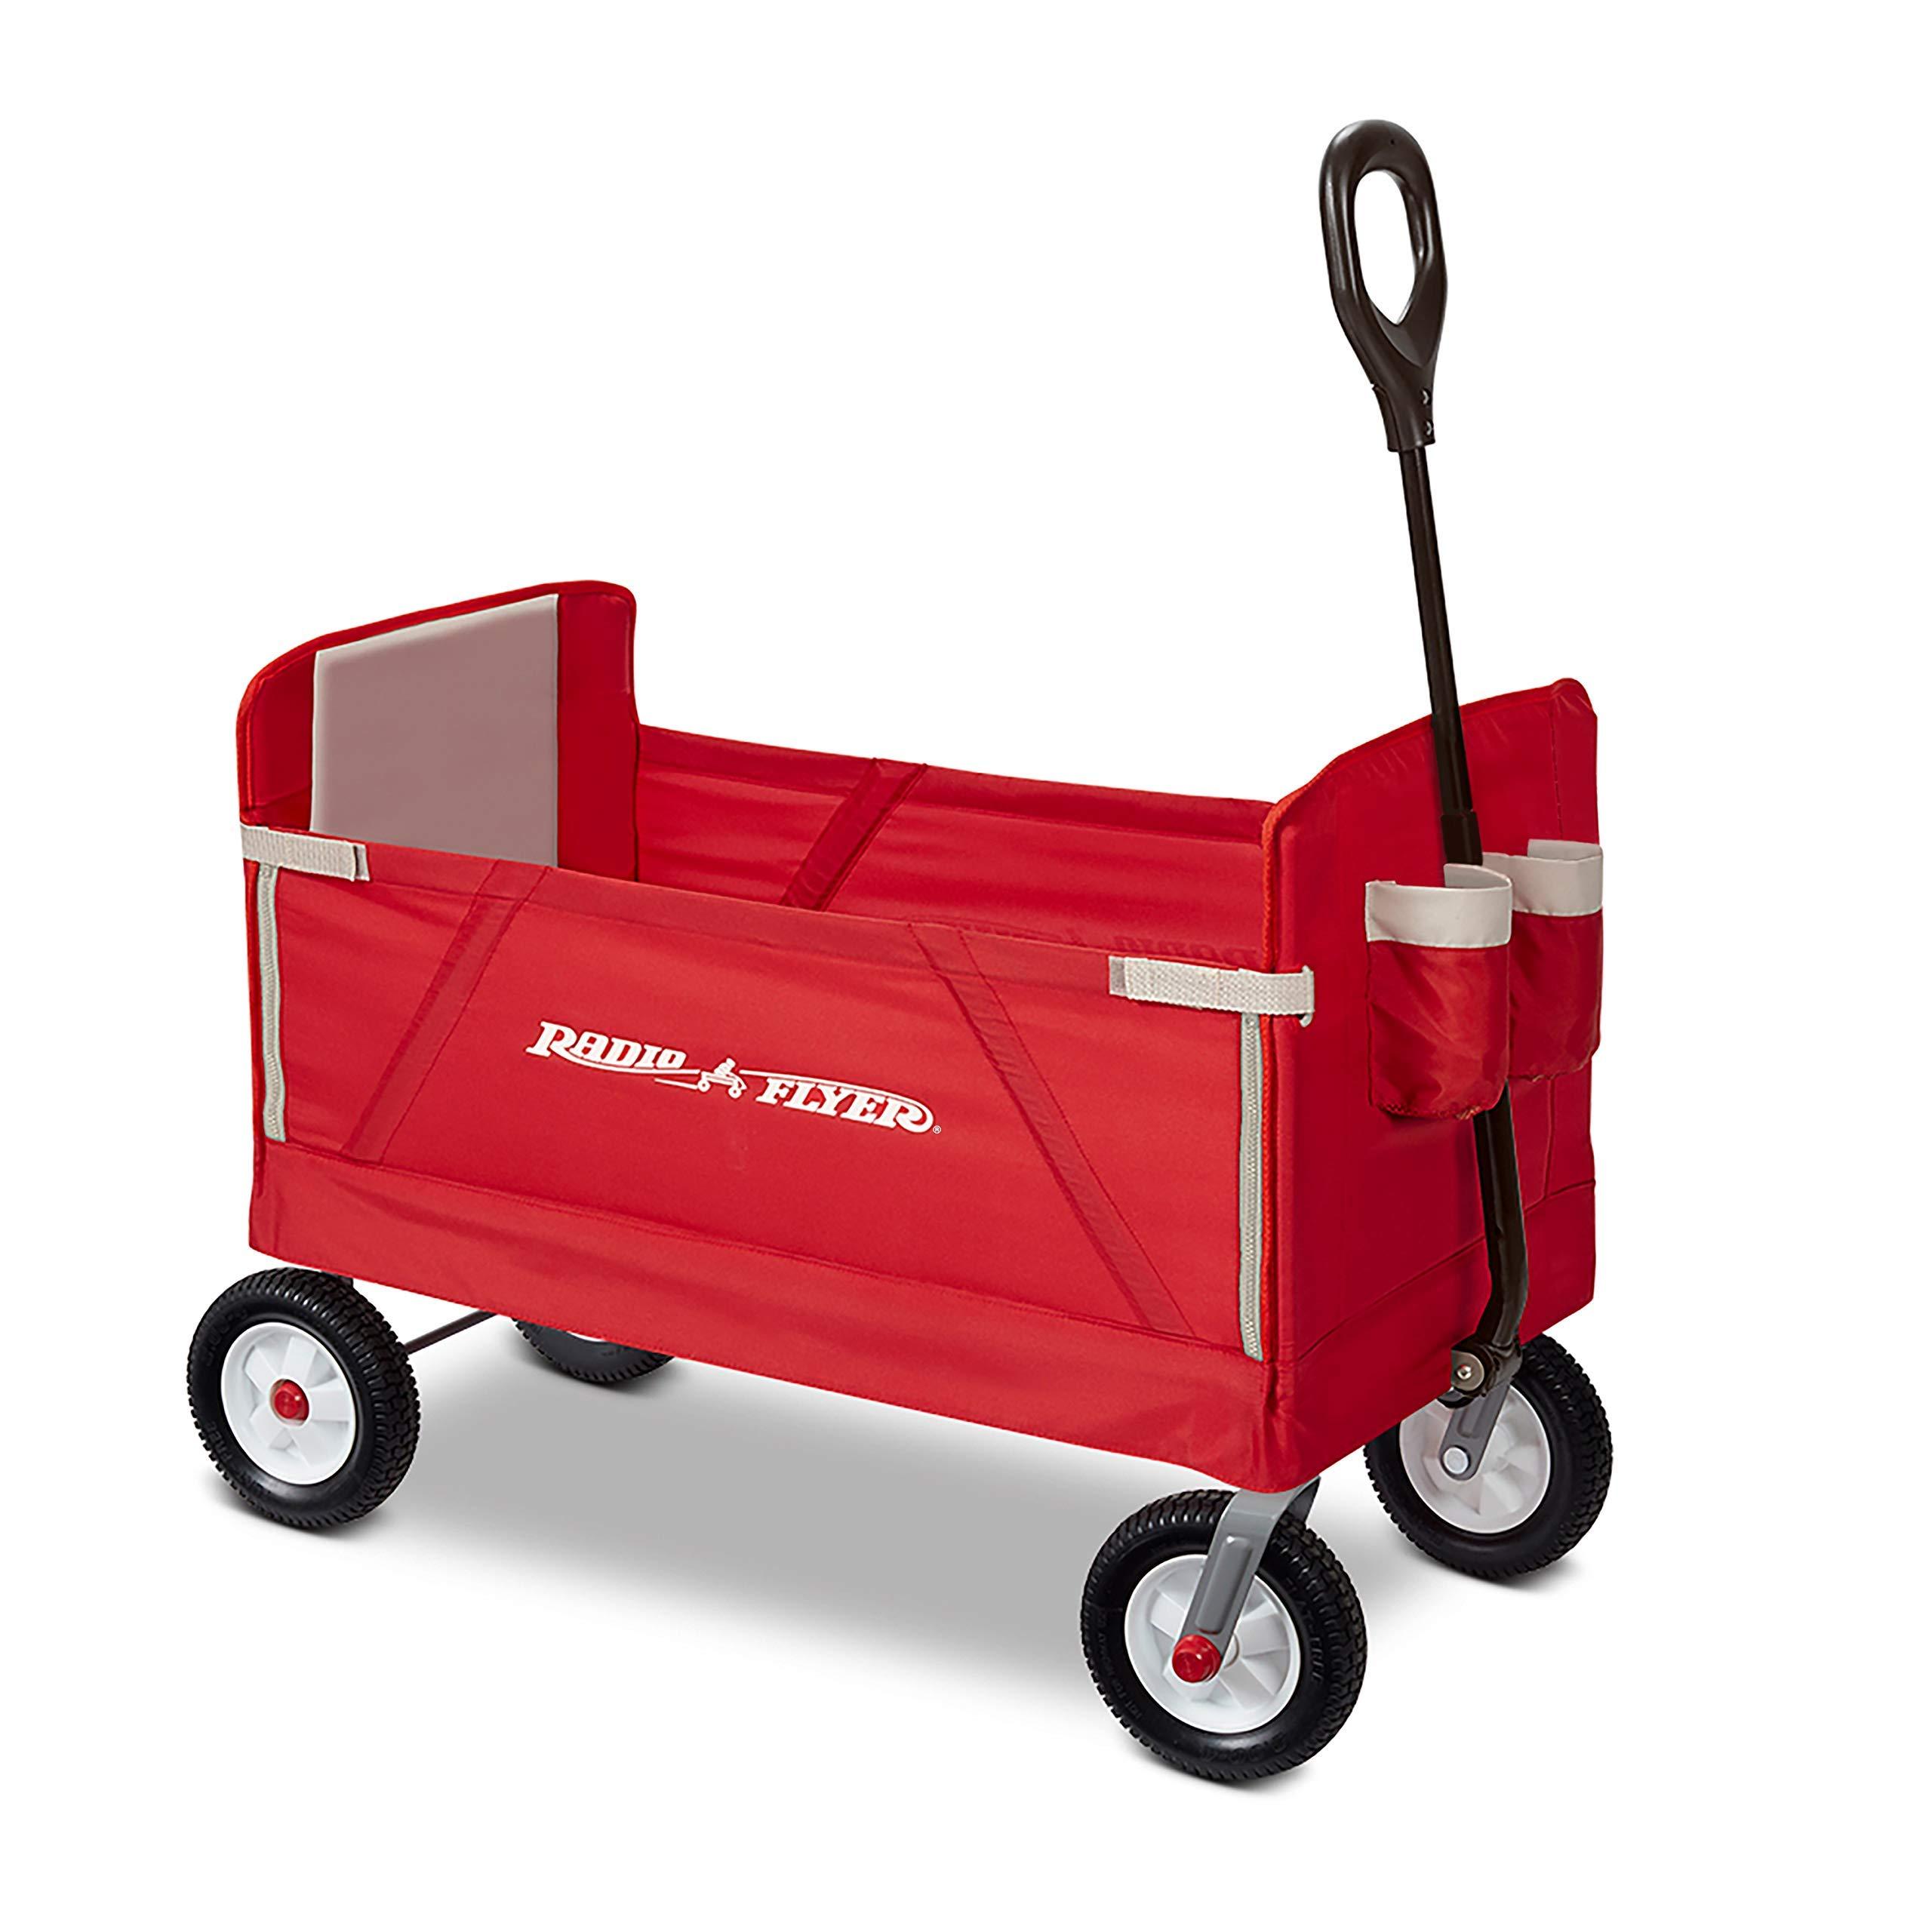 Radio Flyer All-Terrain 3-in-1 EZ Folding Wagon for kids and cargo (Renewed)